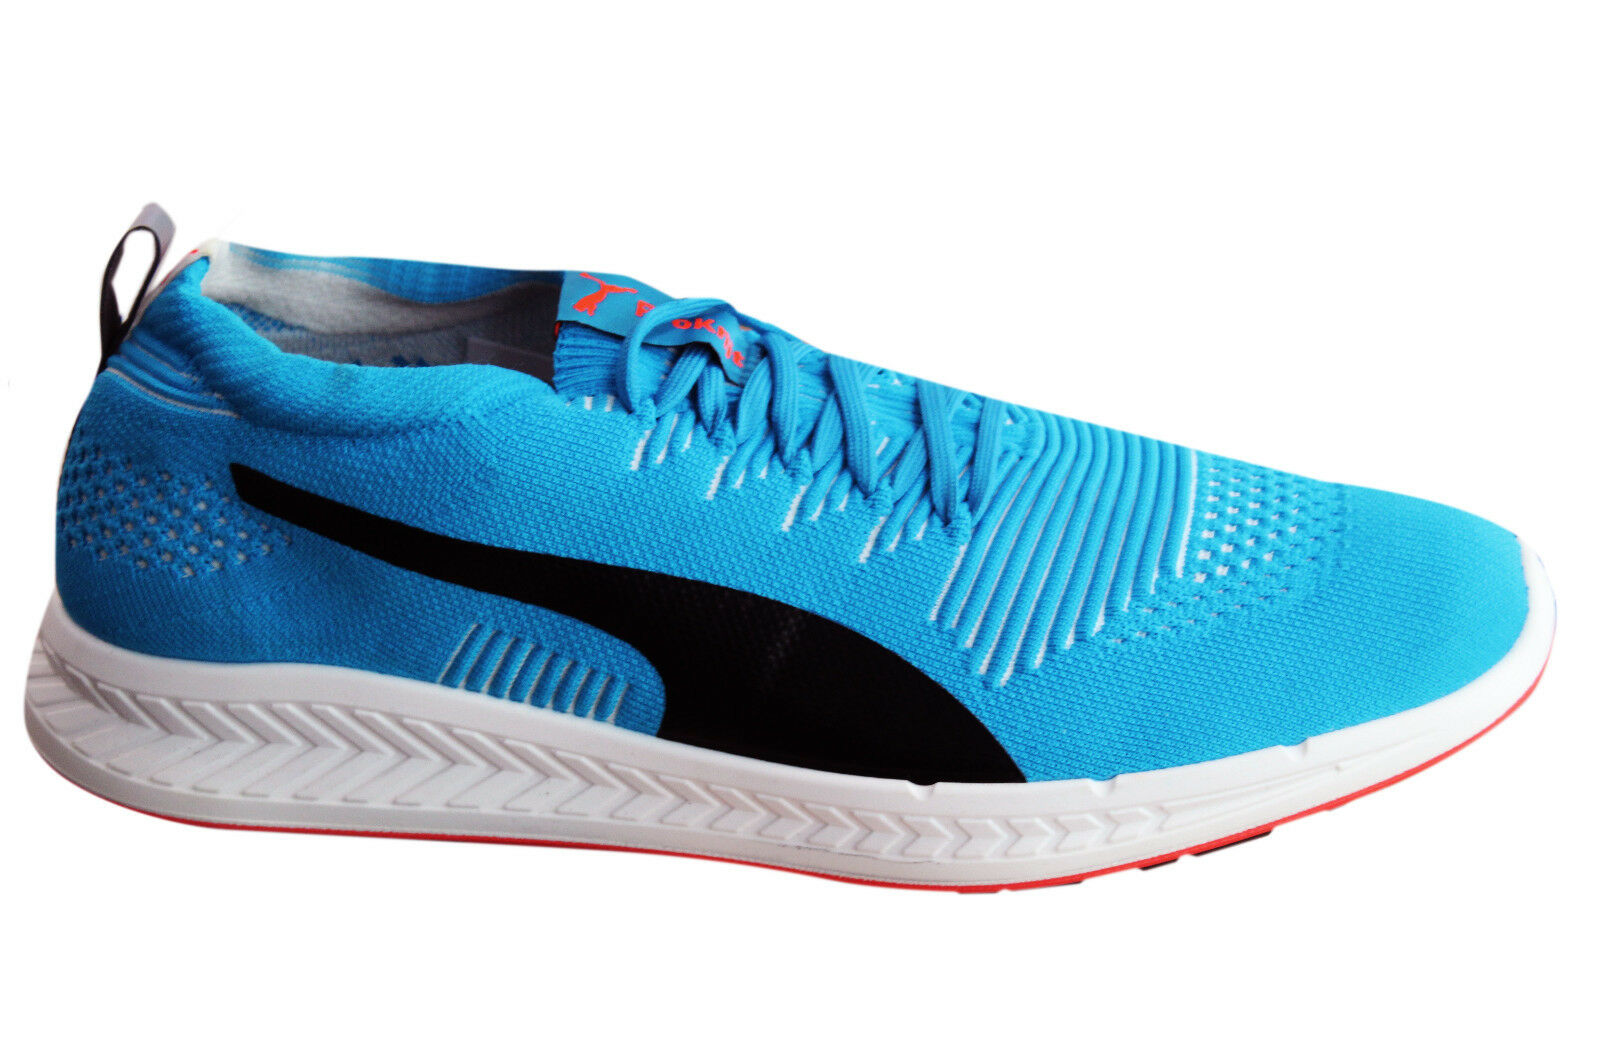 Puma Ignite ProKnit Mens Trainers Lace Up Running Shoes Blue Black 188177 05 M10